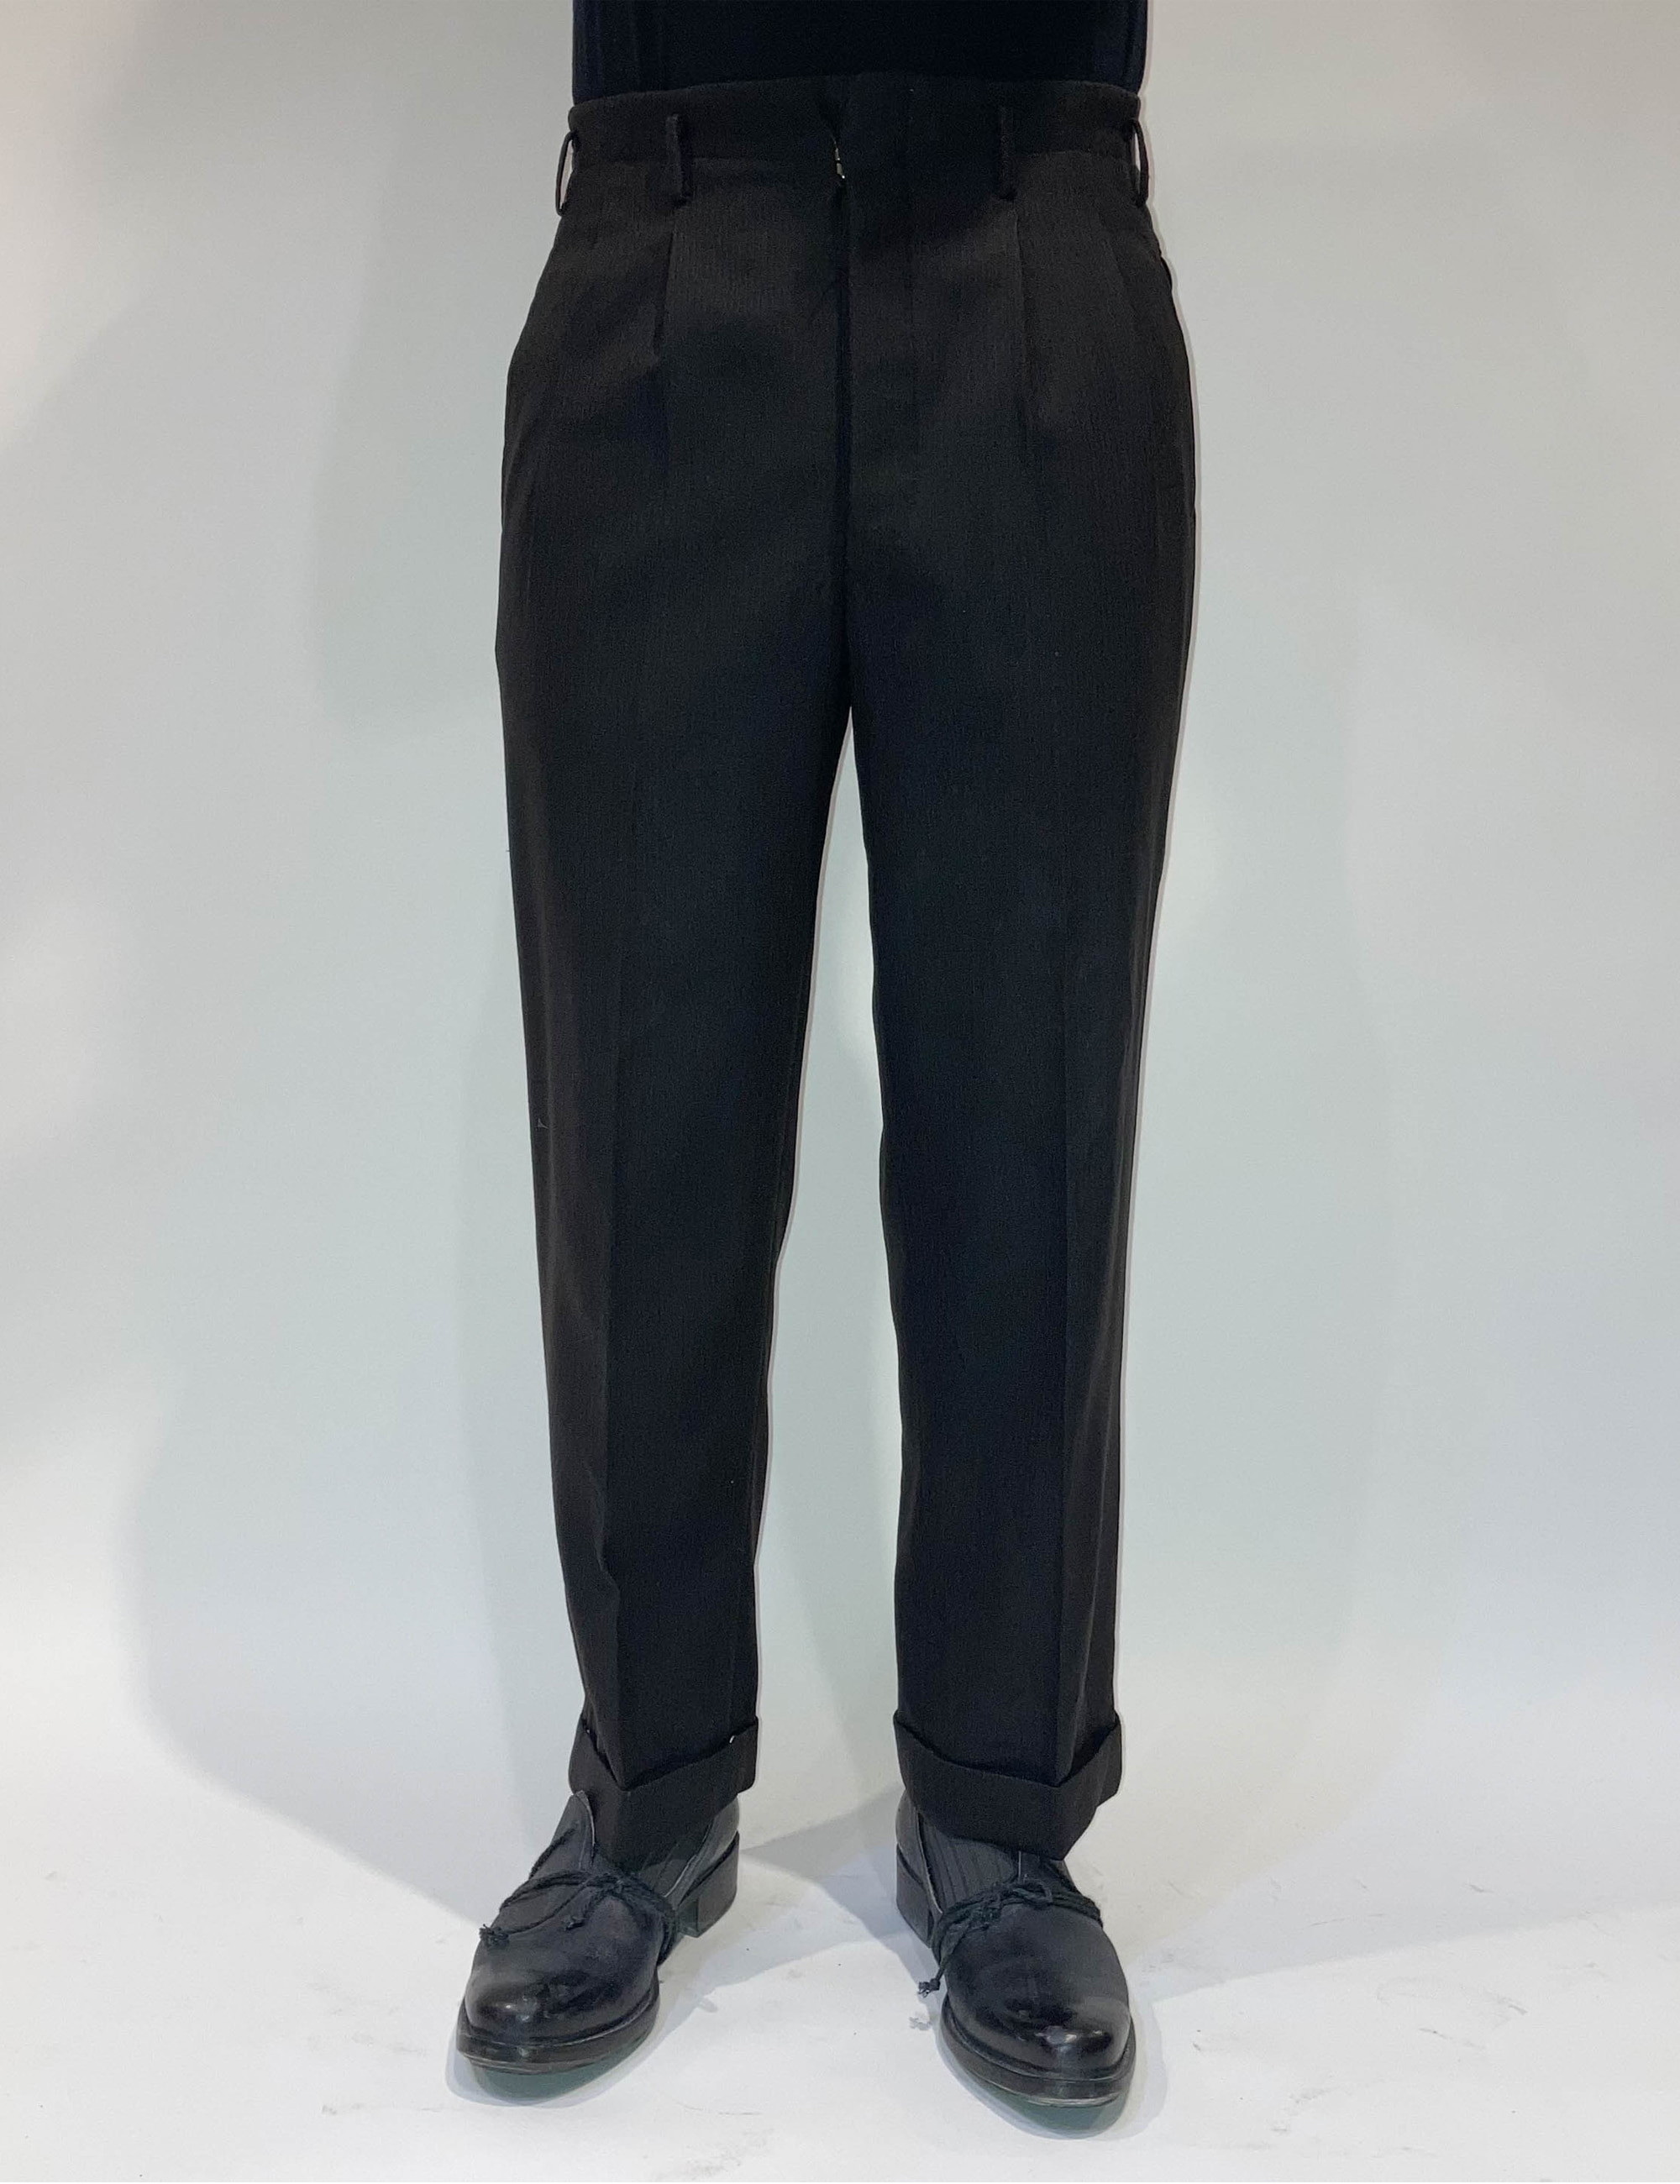 VINTAGE DARK GRAY PANTS